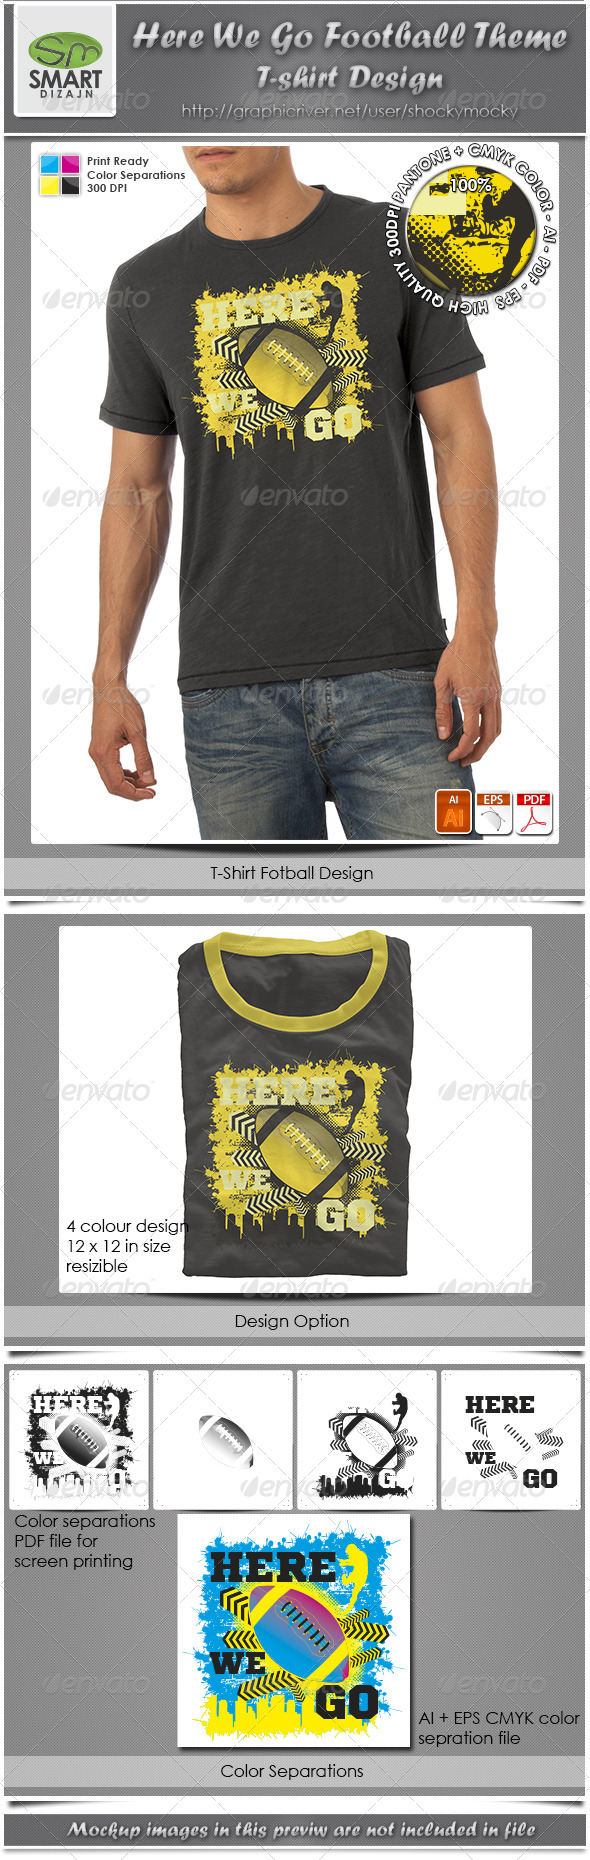 Here We Go Football Theme T-shirt Design - Sports & Teams T-Shirts